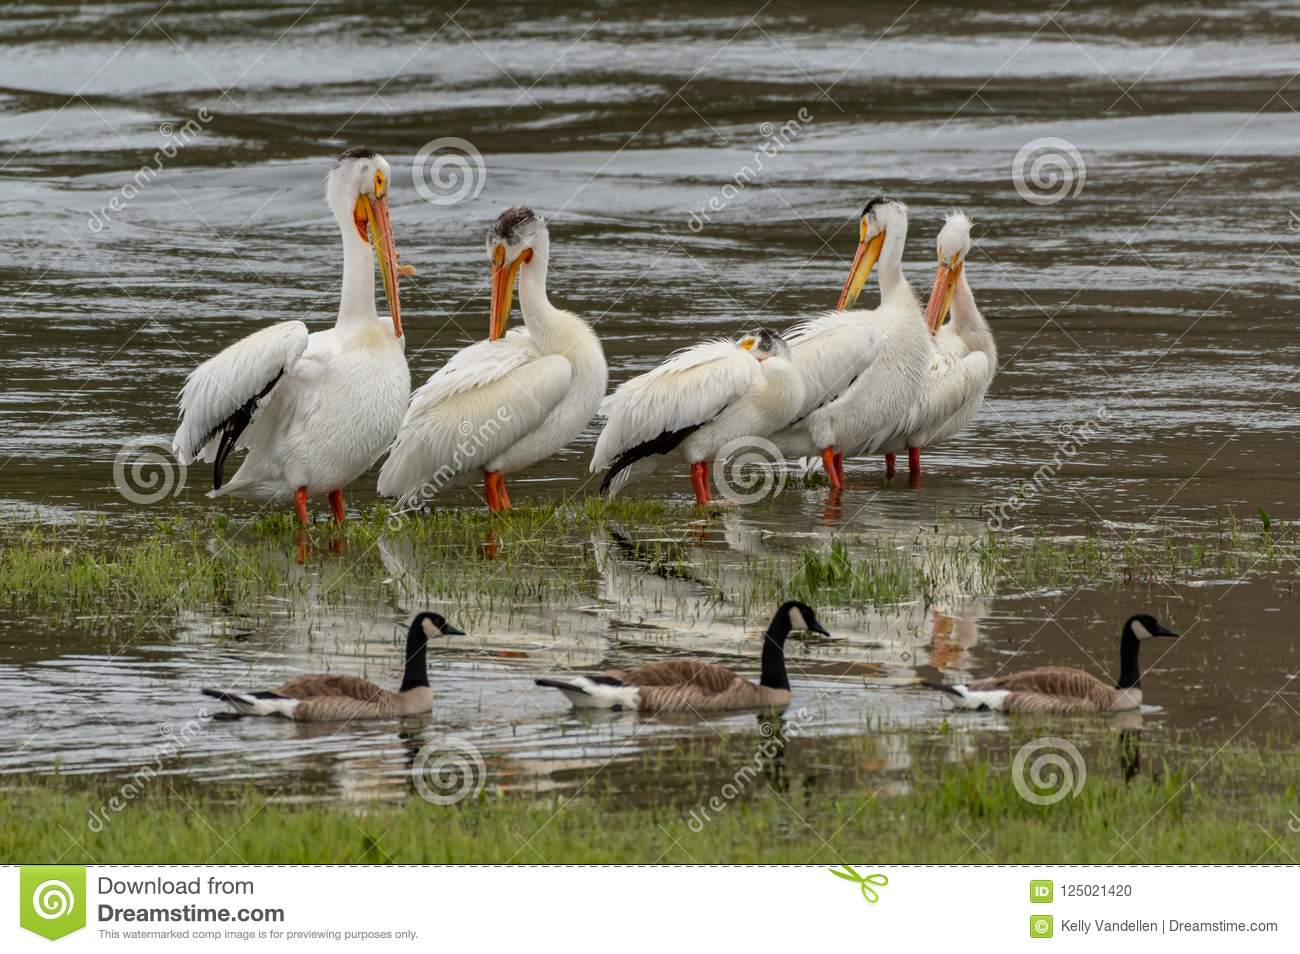 Pelicans and Ducks in Shallow Lake